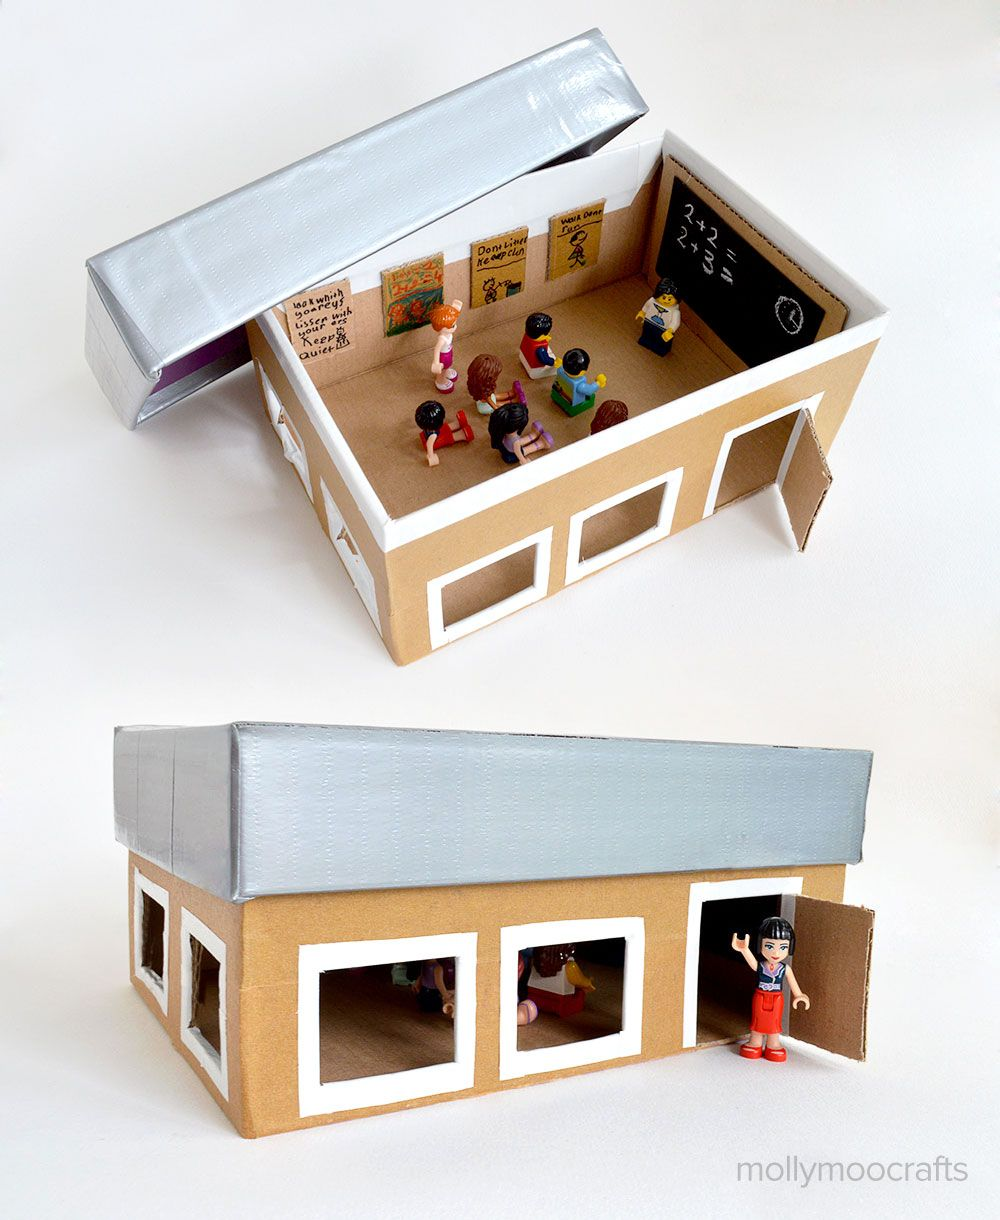 5 Coolest DIY Kids Toys Made with Cardboard